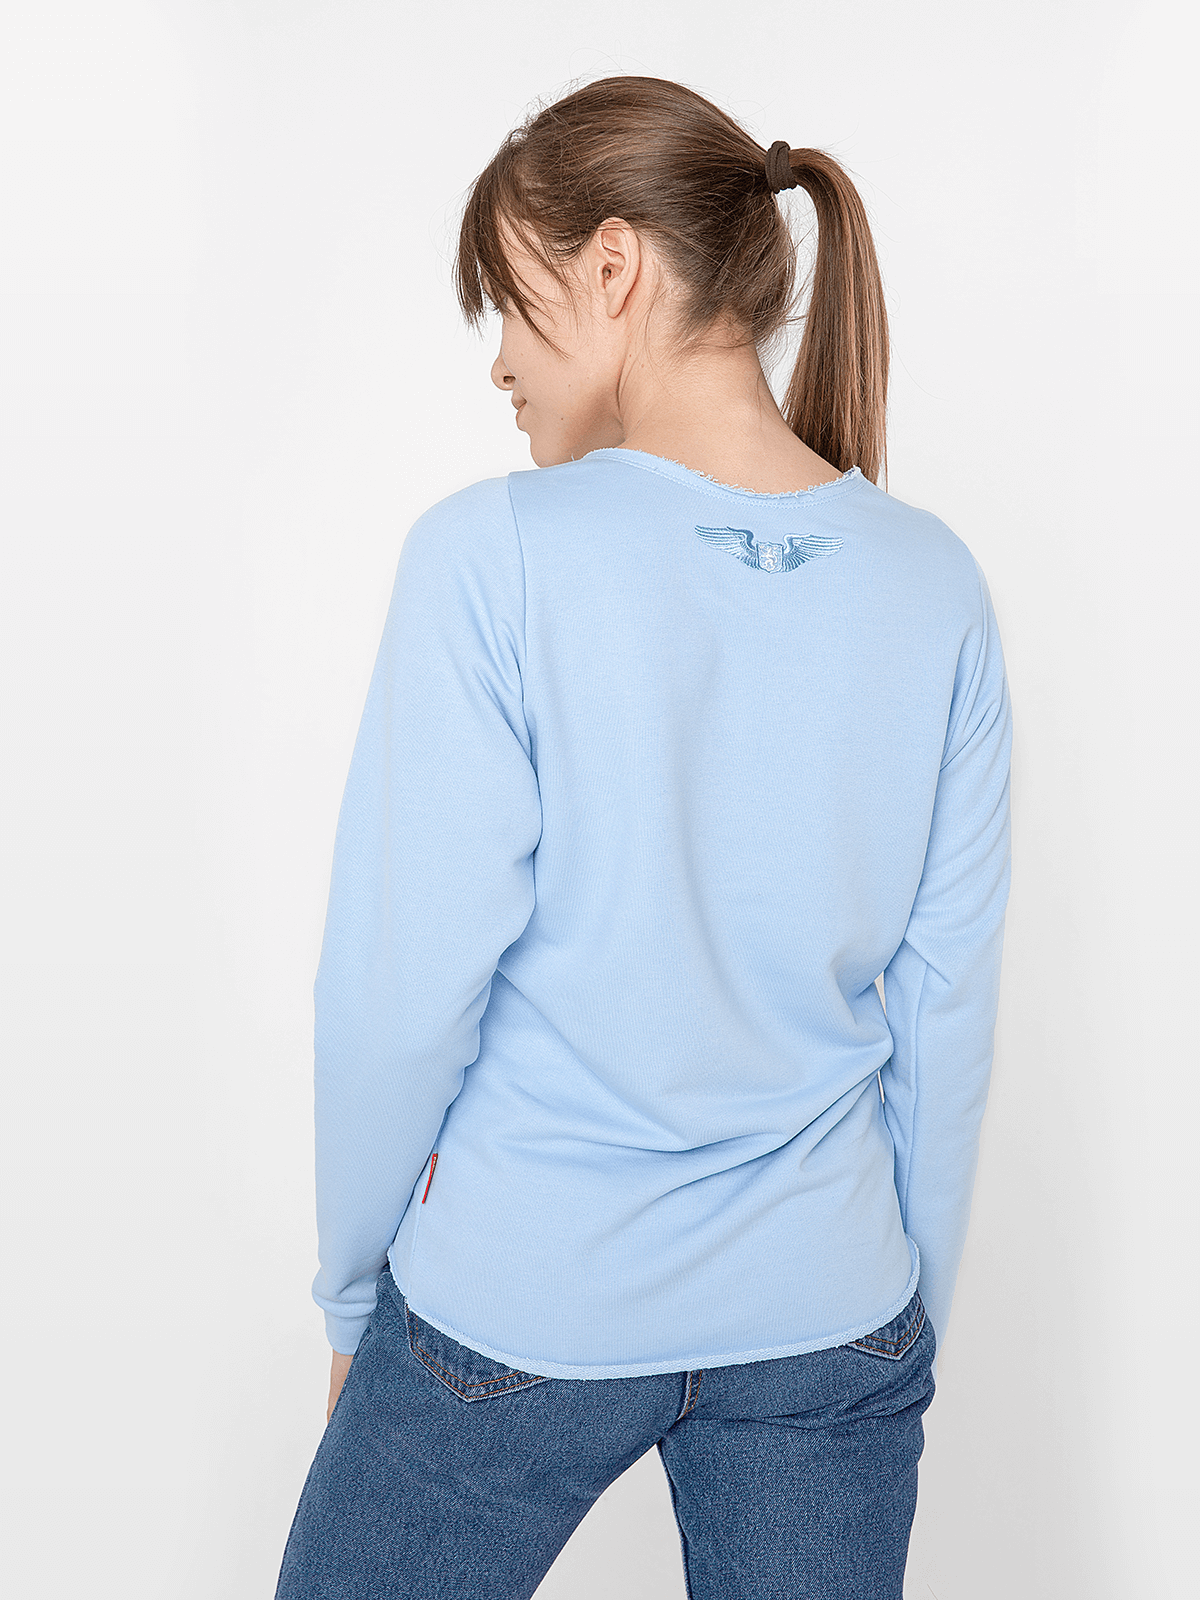 Women's Sweatshirt Flying Fishes. Color sky blue.  Technique of prints applied: silkscreen printing, embroidery.